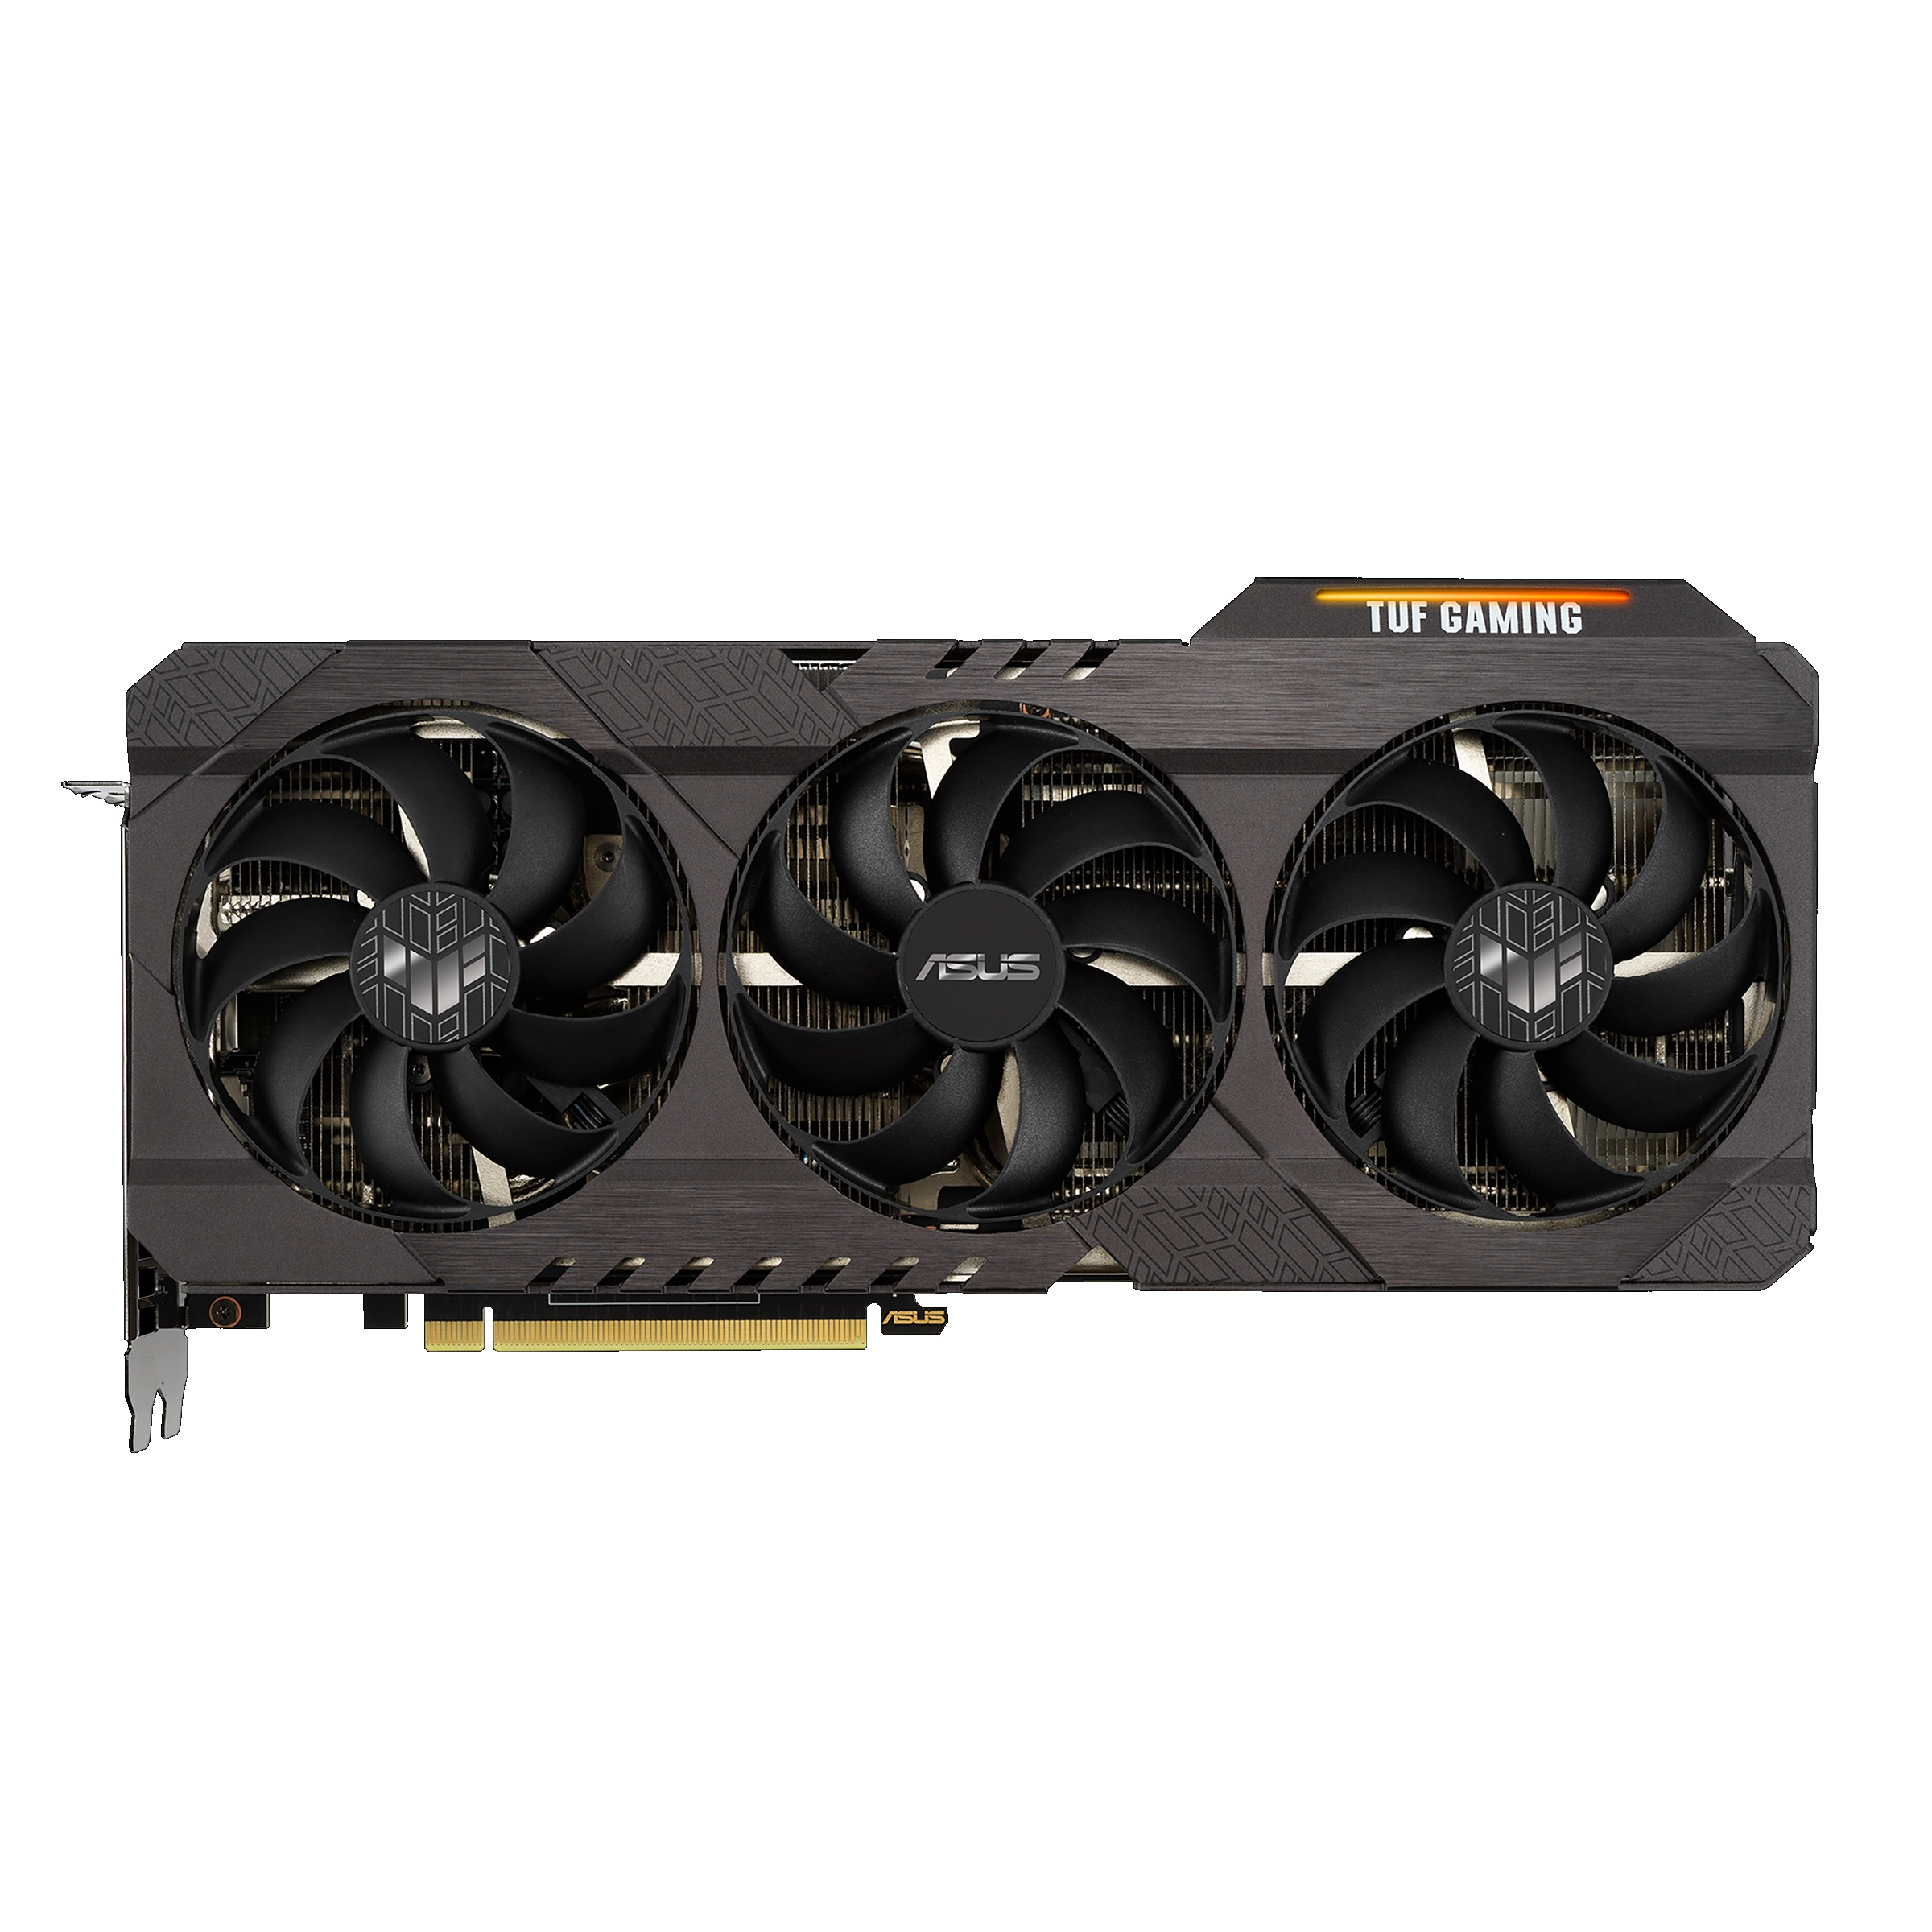 Asus TUF Gaming GeForce RTX 3070 V2 OC Edition Graphics Card